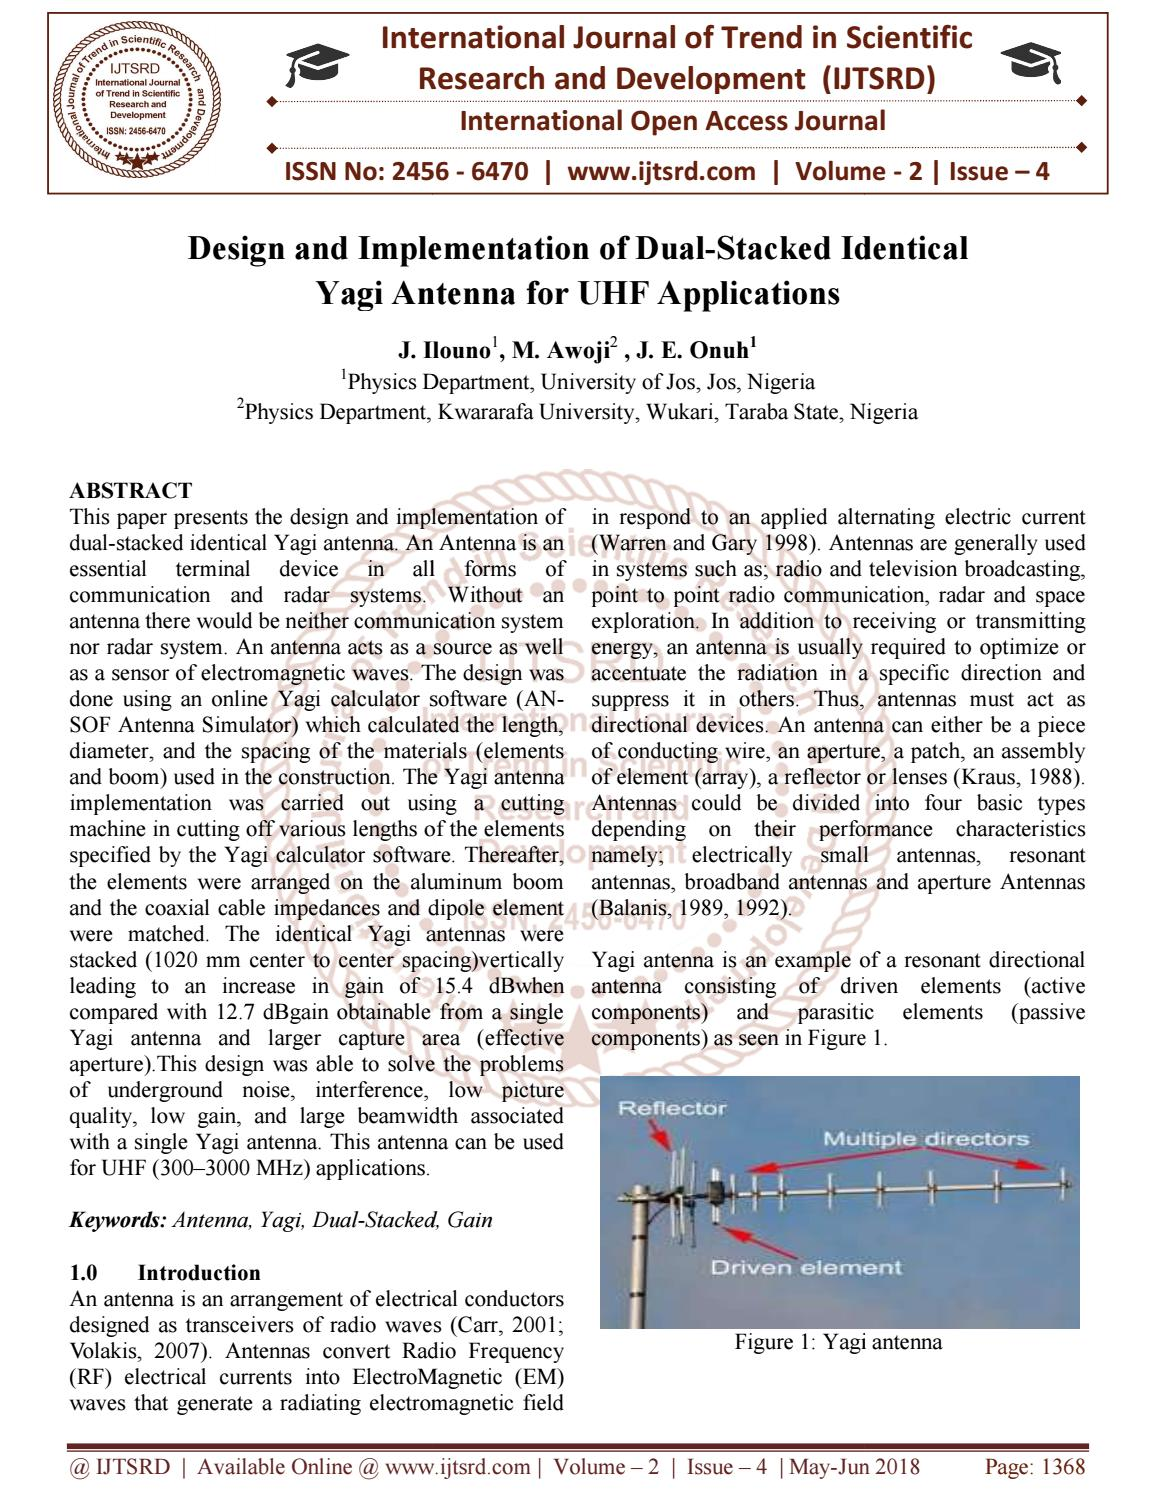 Design and Implementation of Dual-Stacked Identical Yagi